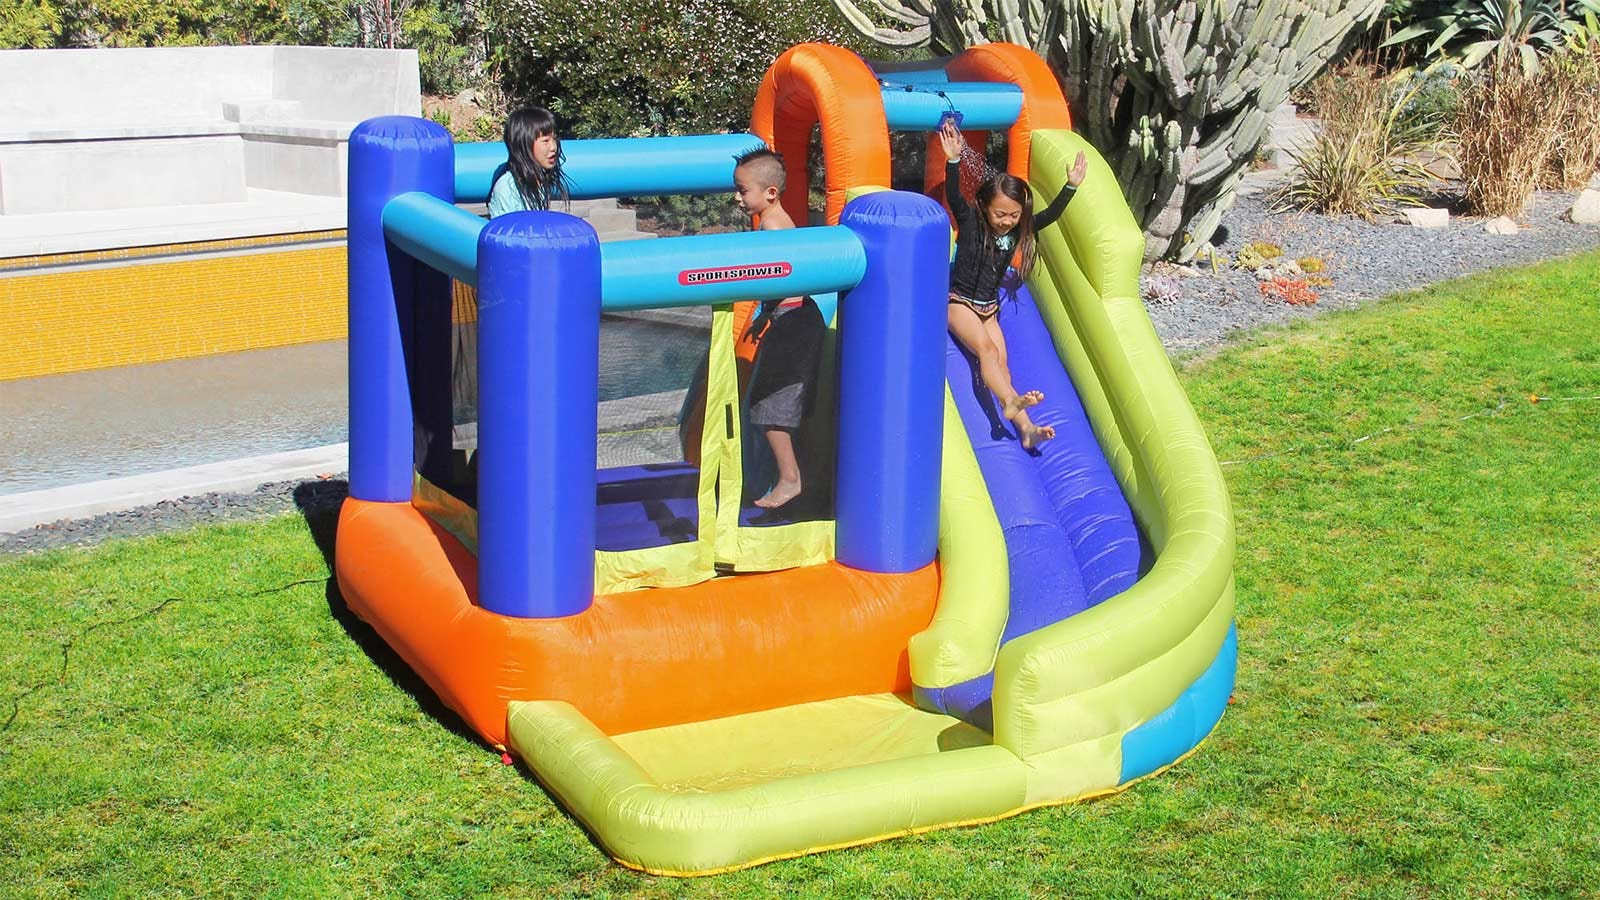 Kids playing outside on colorful bounce house with slide.